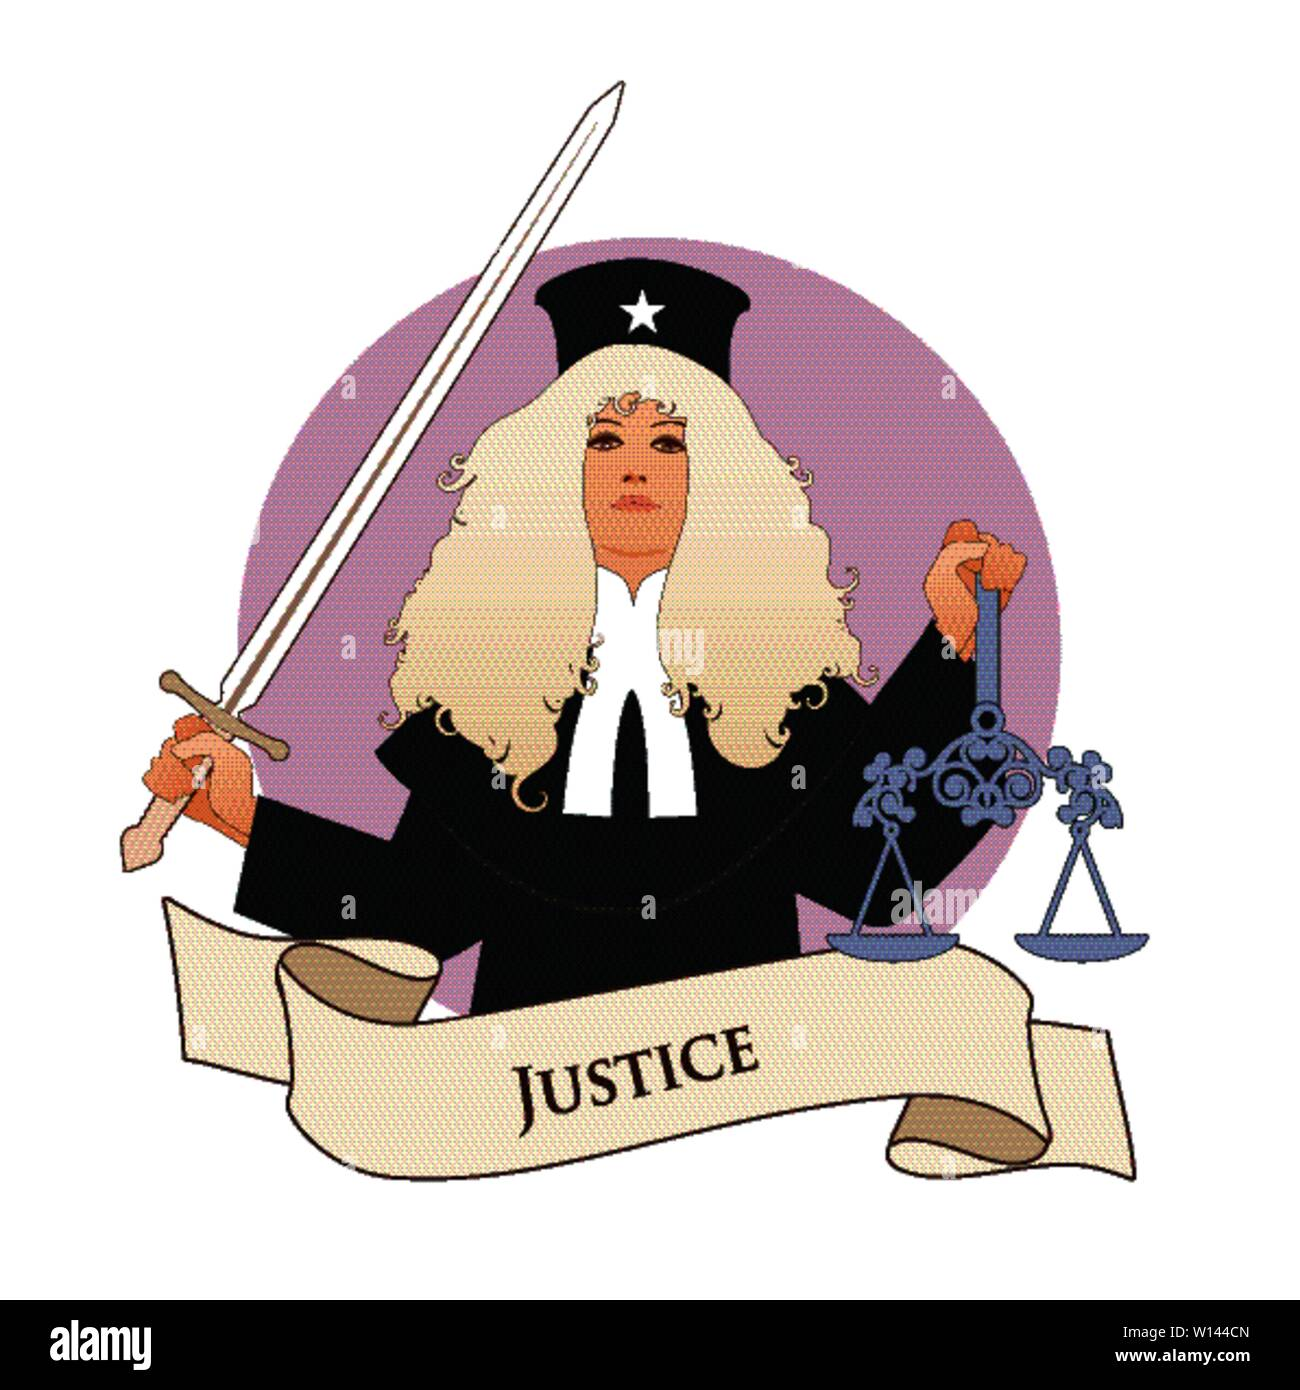 Major Arcana Emblem Tarot Card. Justice. Woman dressed in a wig and judge's clothes, holding a sword in one hand and a scale in another, isolated on w - Stock Image